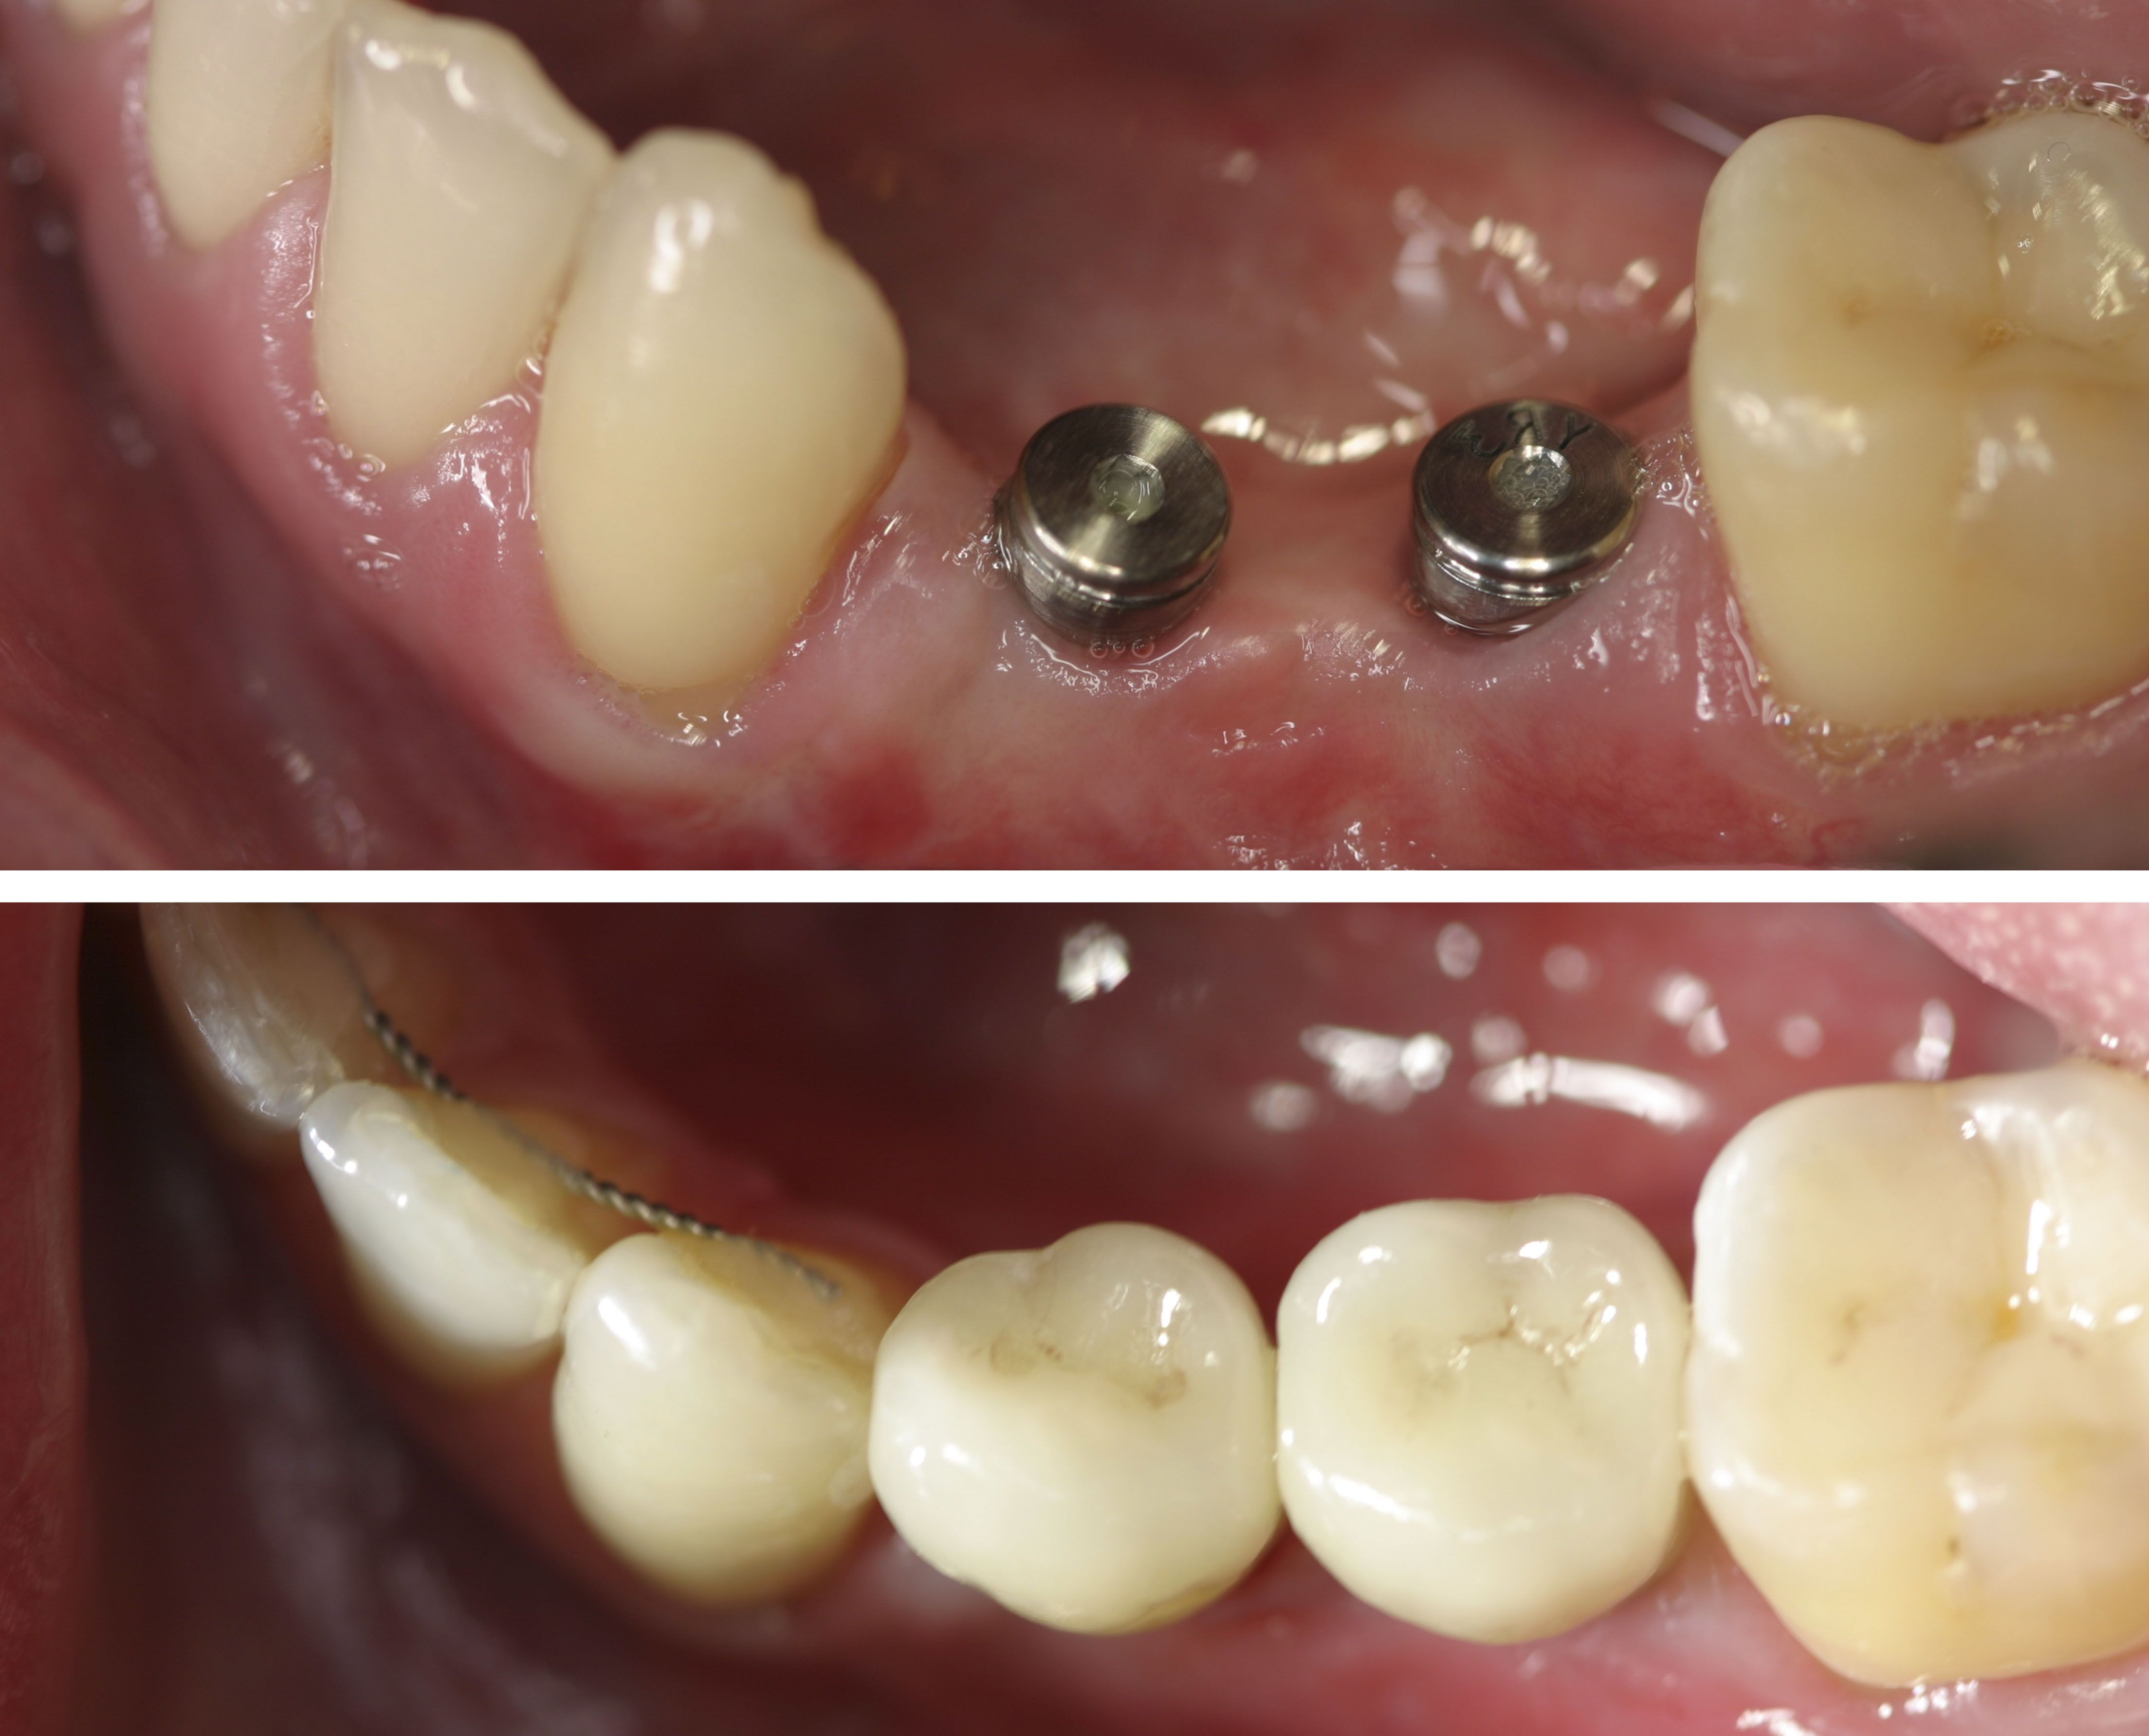 Before And After Patient Had Two Missing Pre Molars Two Dental Implants Were Placed In The Open Spaces Six Months Later T Dental Implants Dental Dentistry